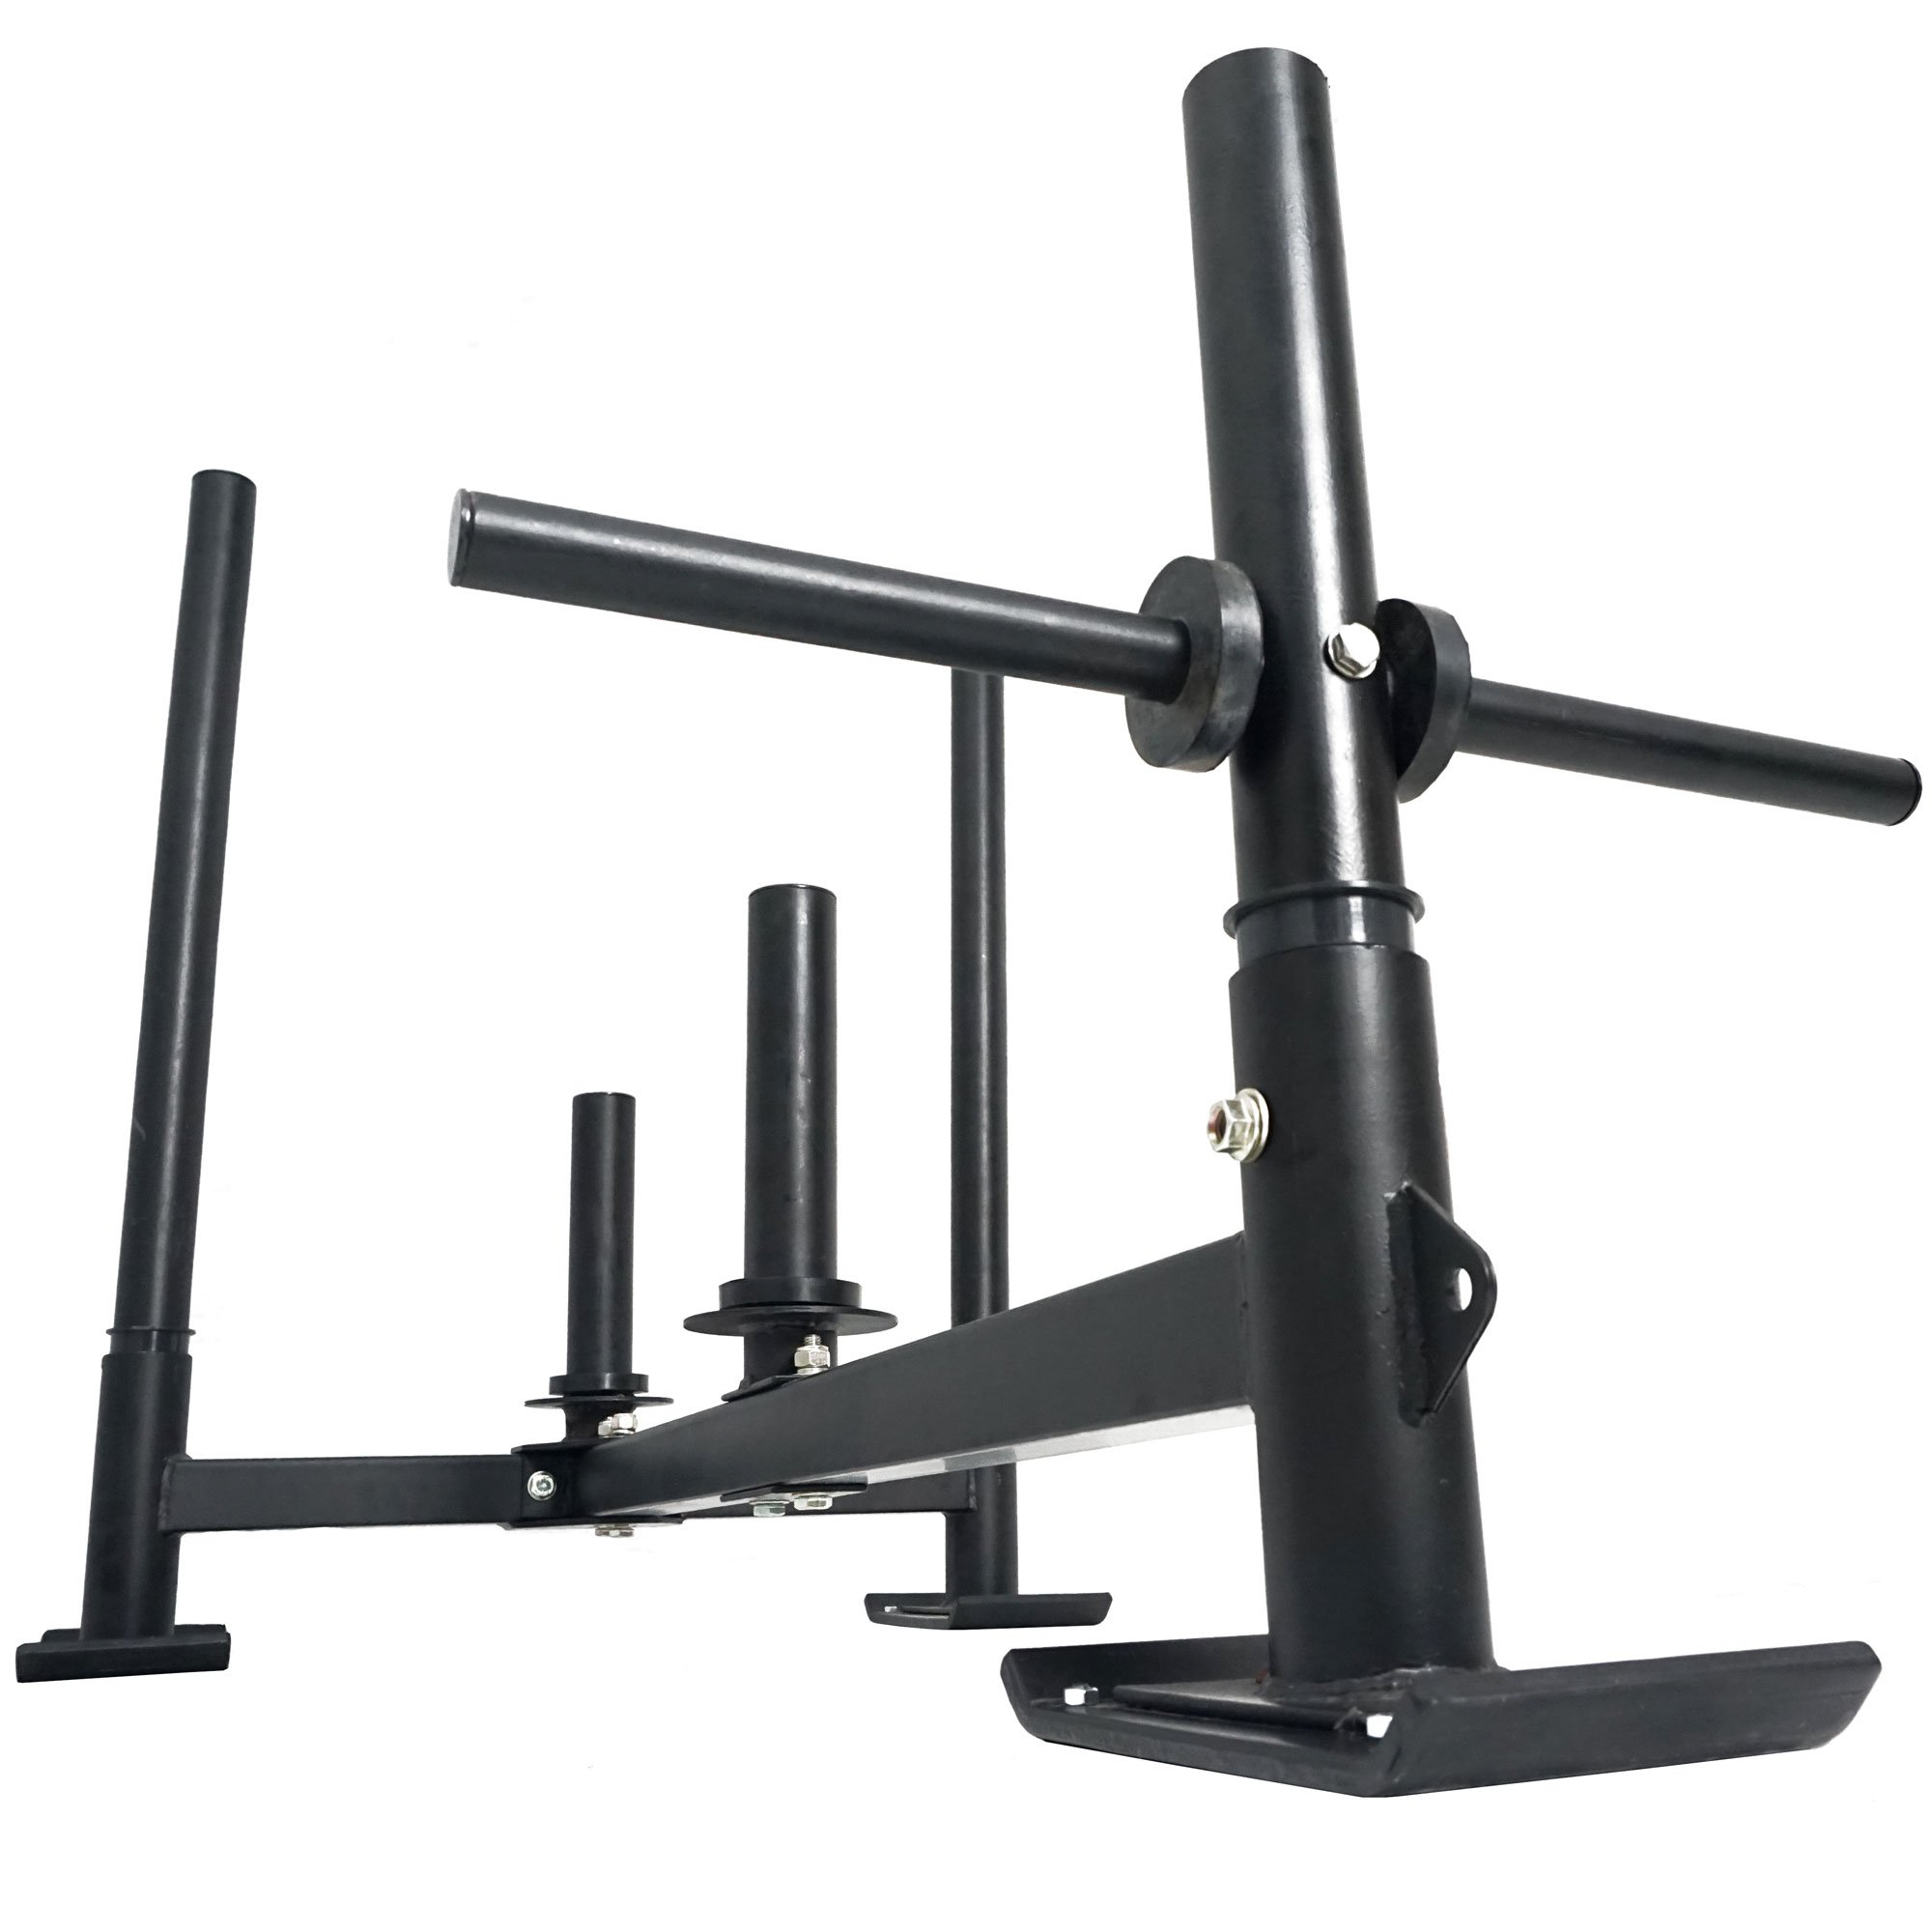 Titan Fitness HD Weight Sled Low Push Pull Heavy High Crossfit Training by Titan Fitness